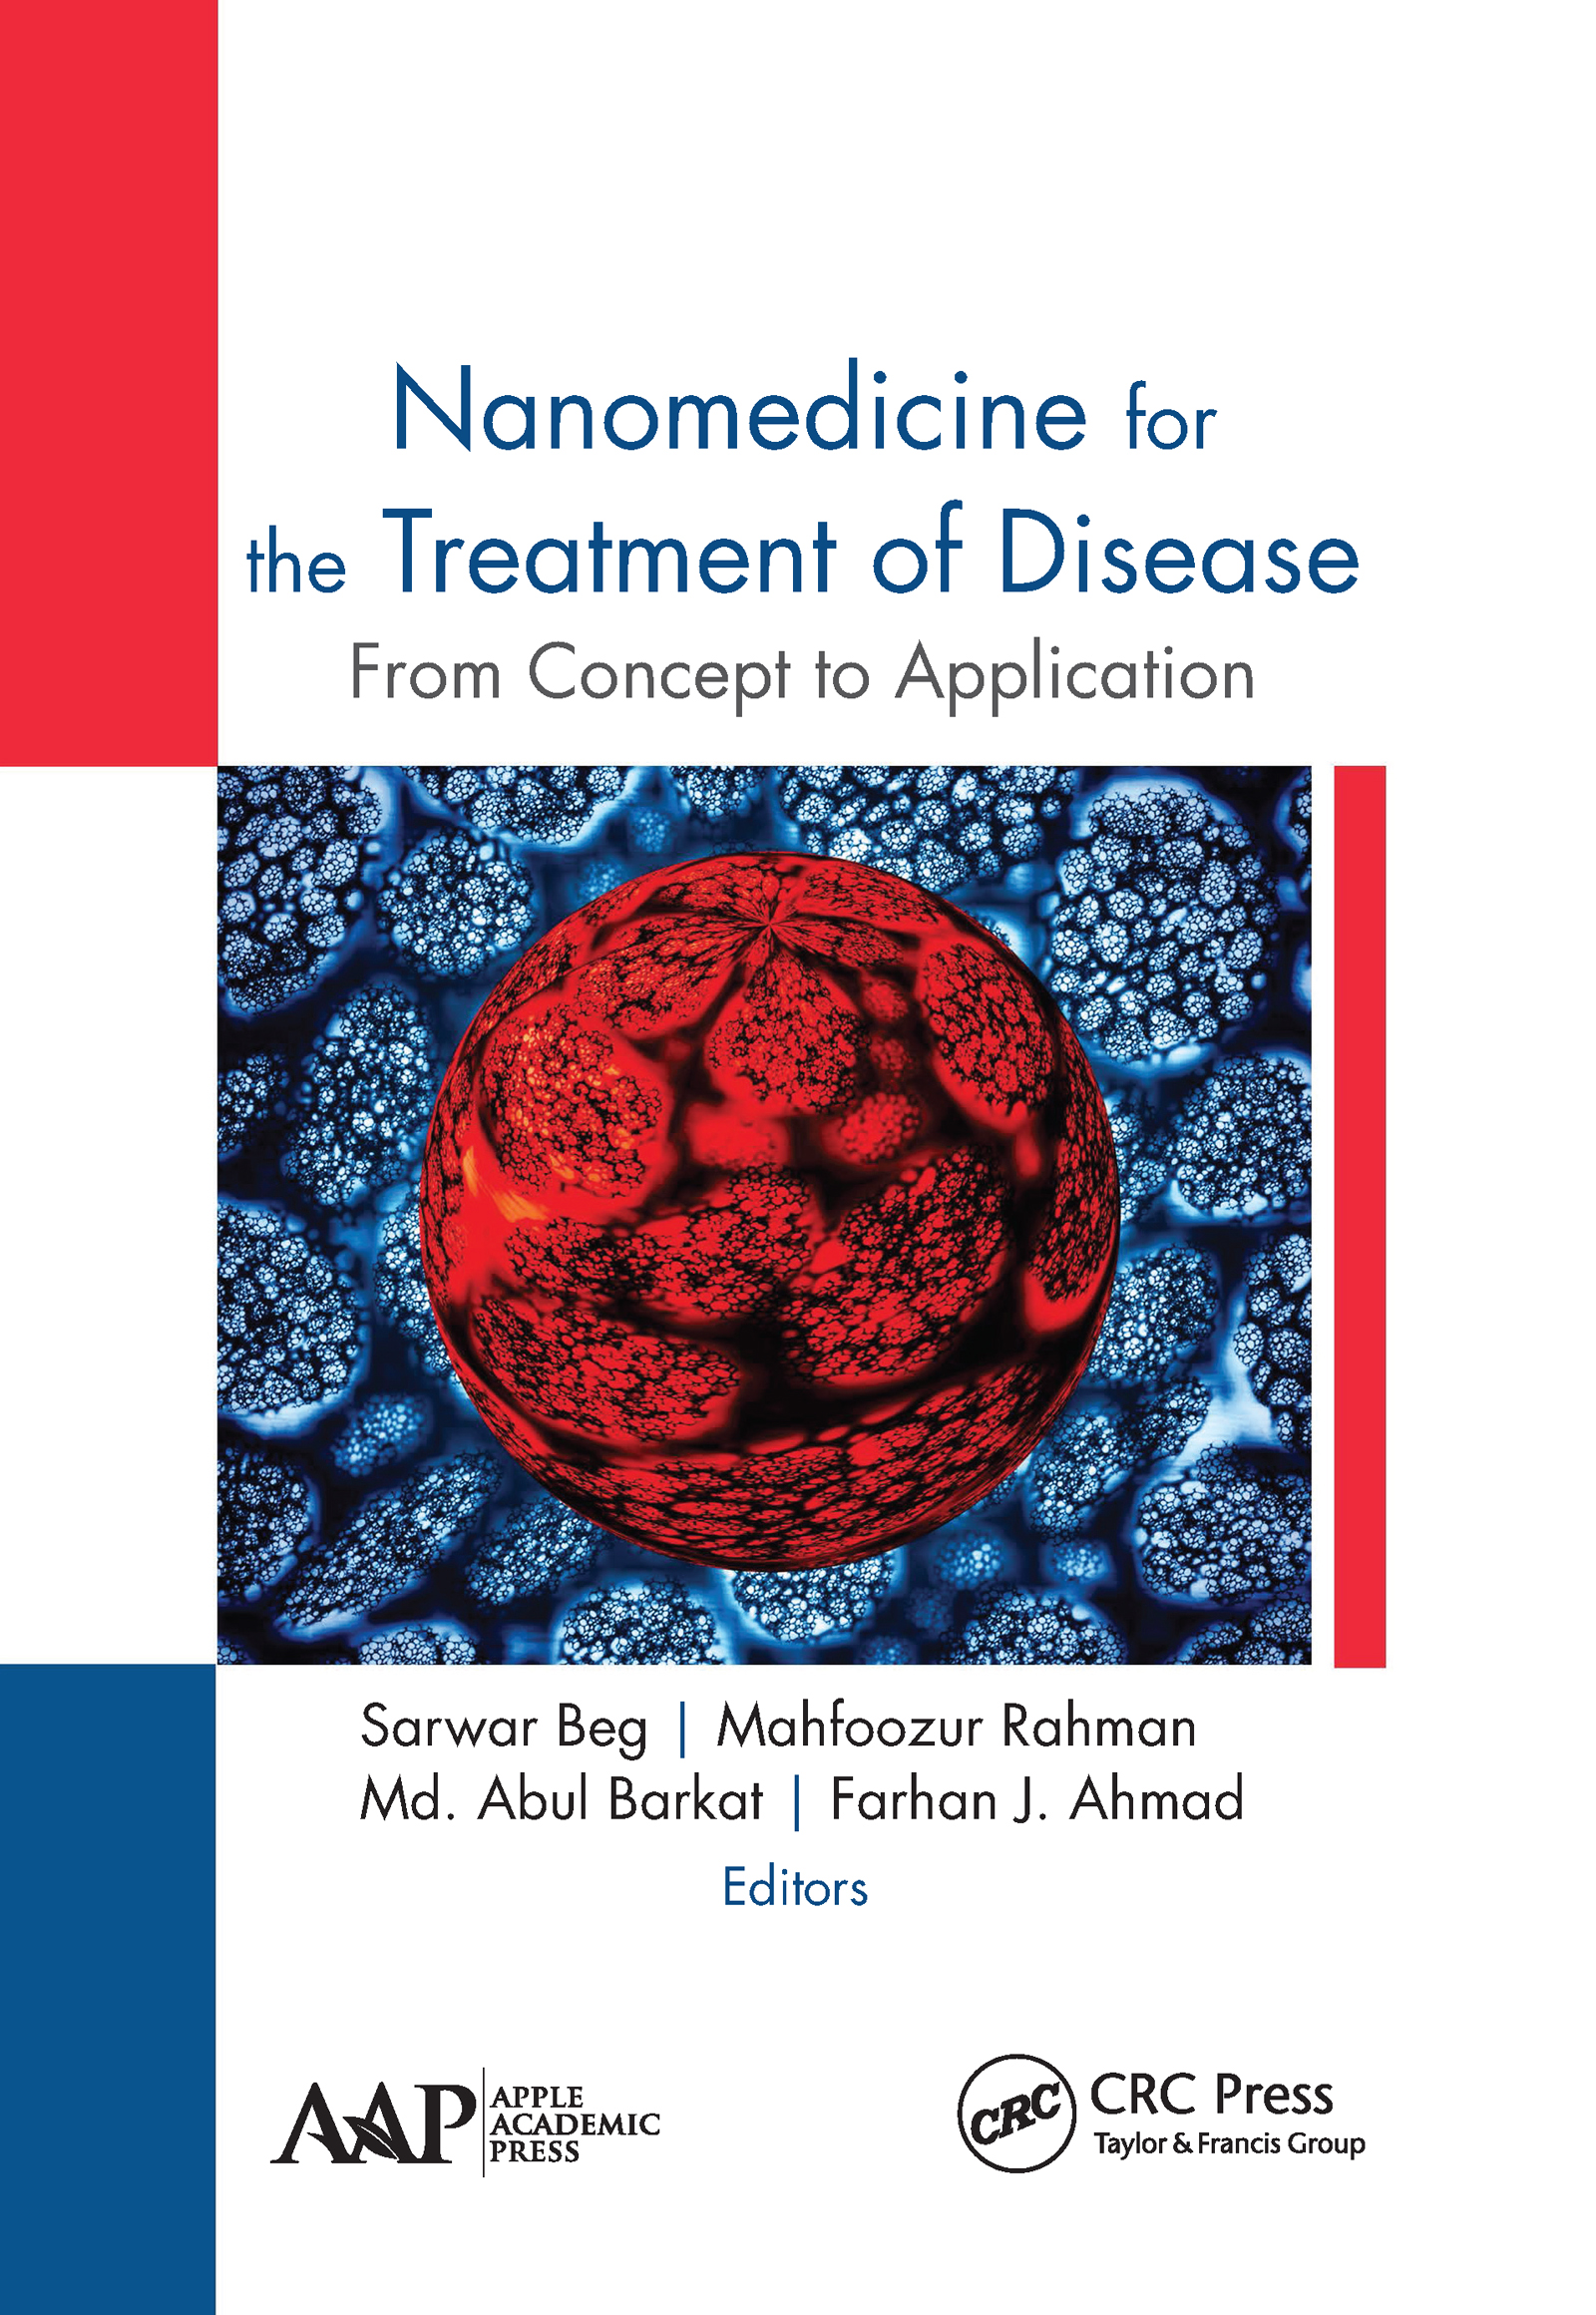 Nanomedicine for the Treatment of Disease